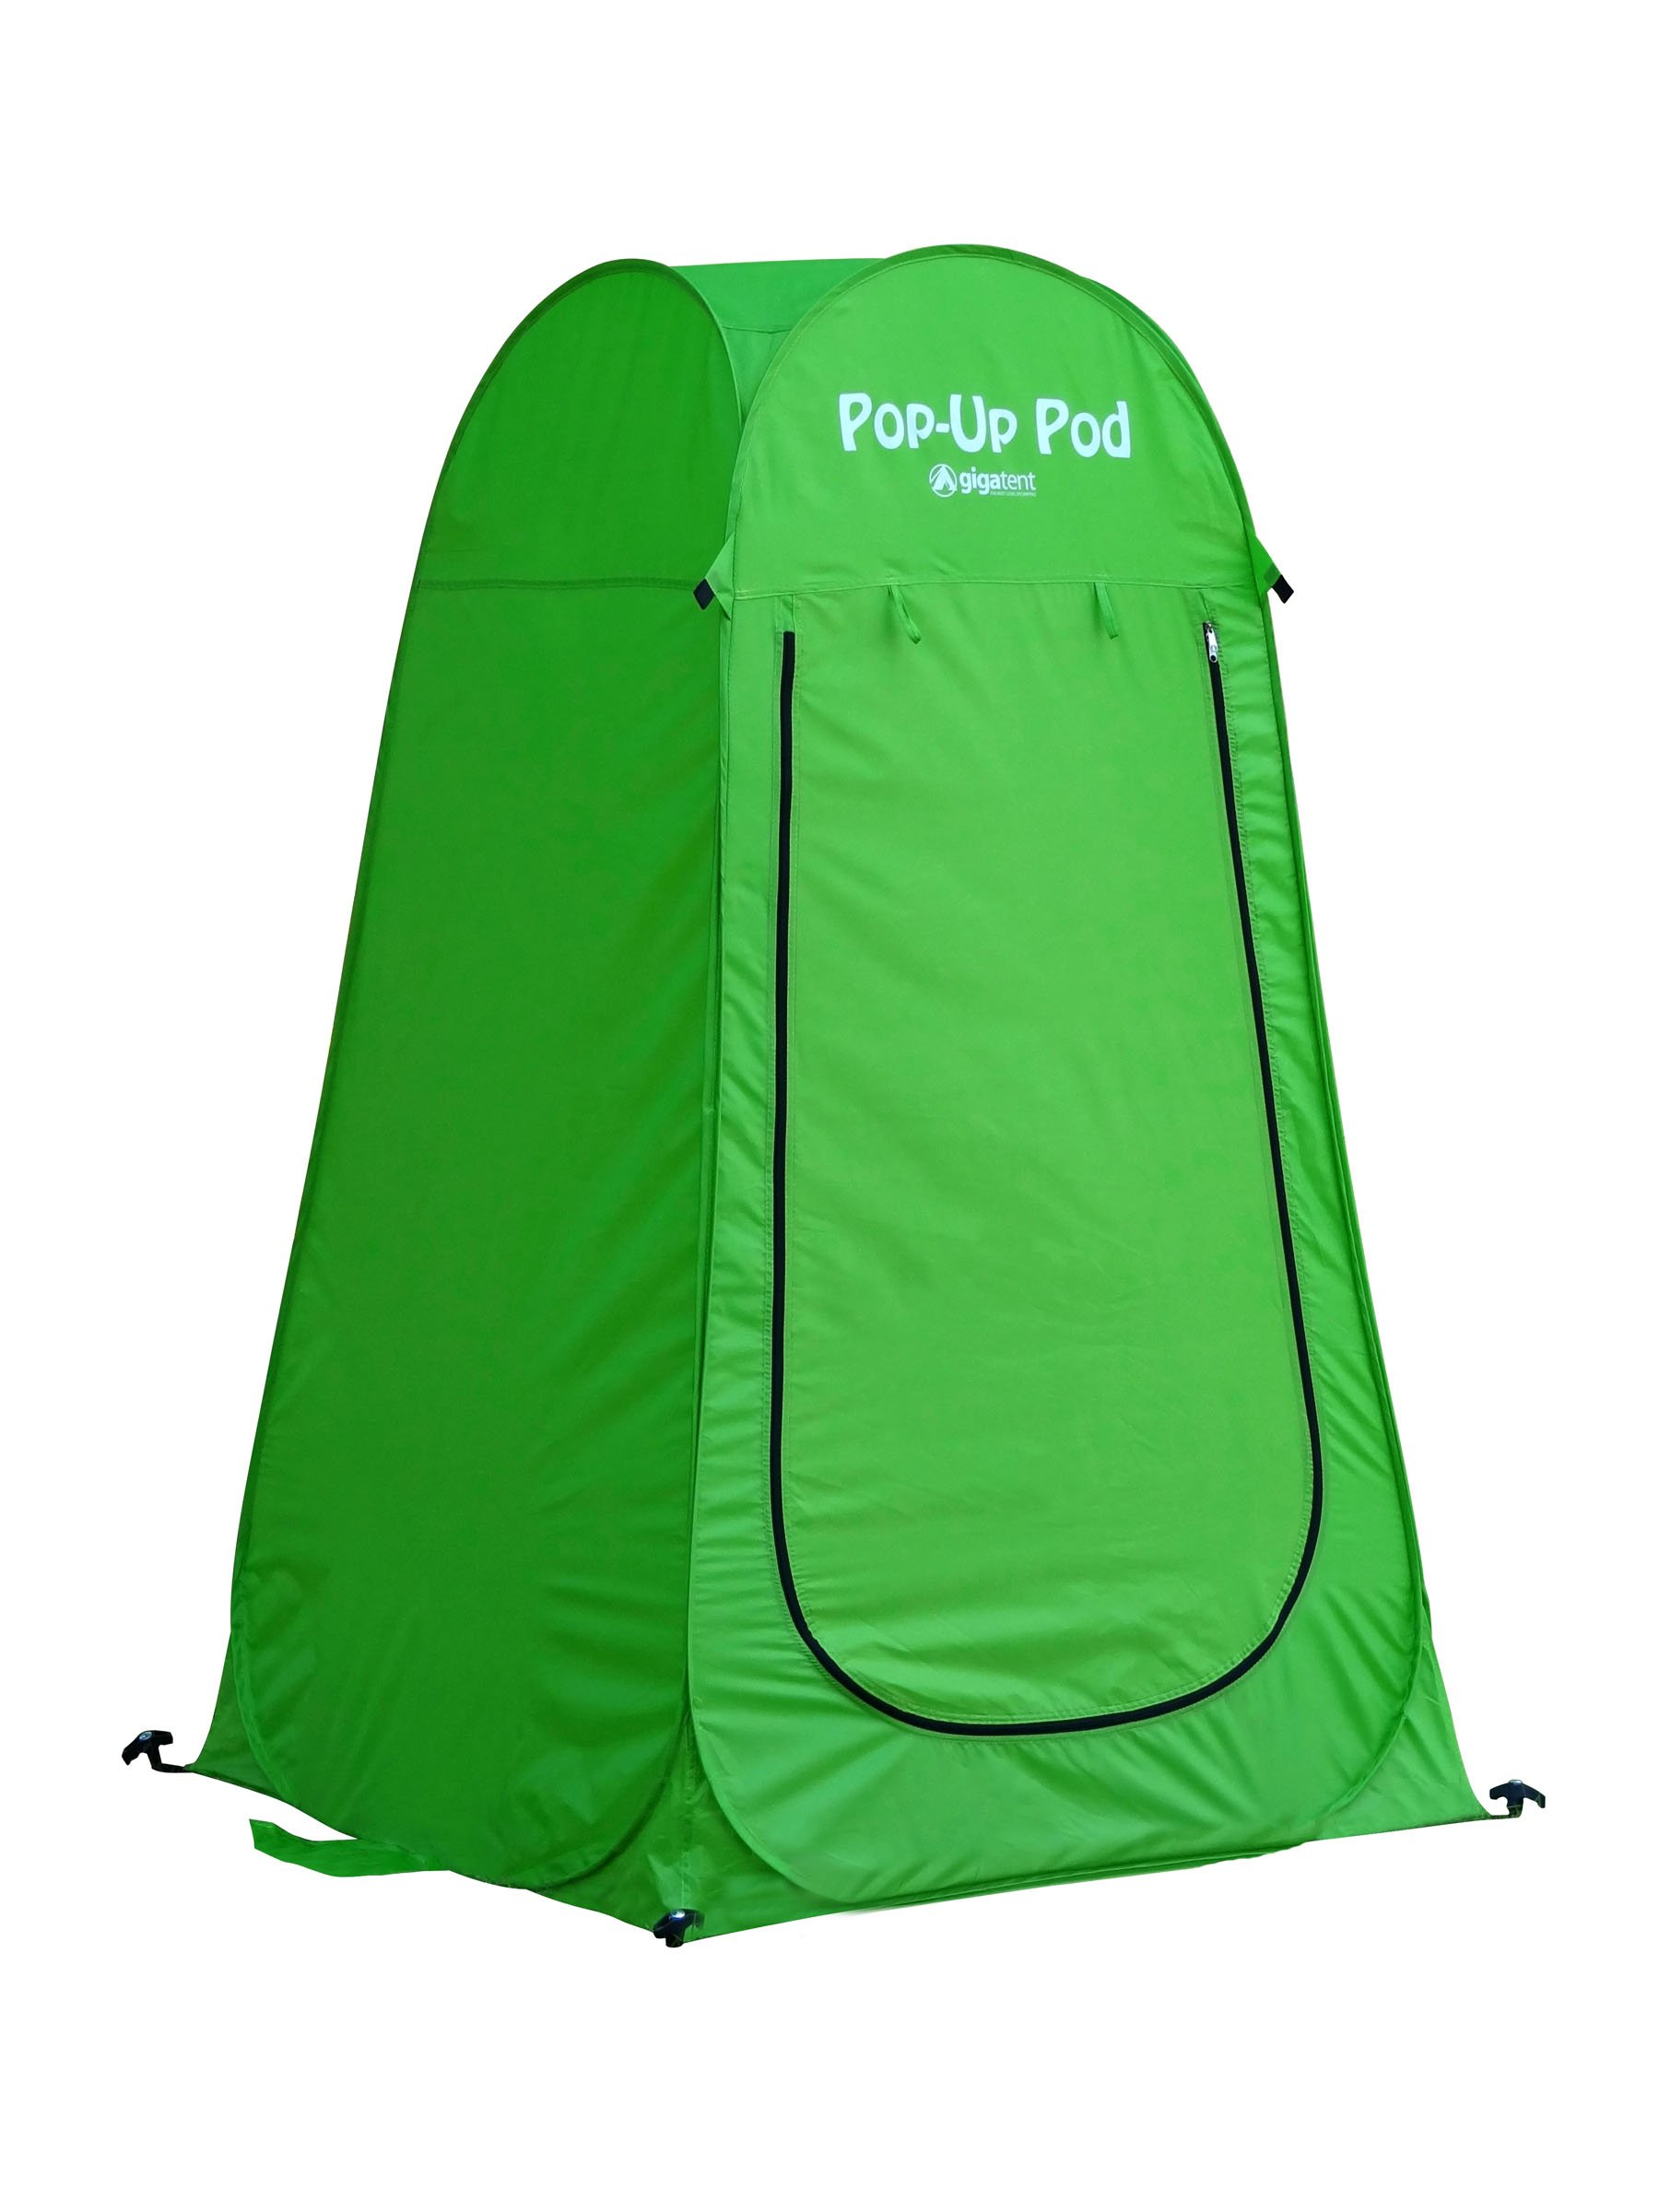 GigaTent Pop Up Pod Changing Room Privacy Tent - Instant Portable Outdoor Shower Tent, Camp Toilet, Rain Shelter for Camping & Beach - Lightweight & Sturdy, Easy Set Up, Foldable - with Carry Bag by GigaTent